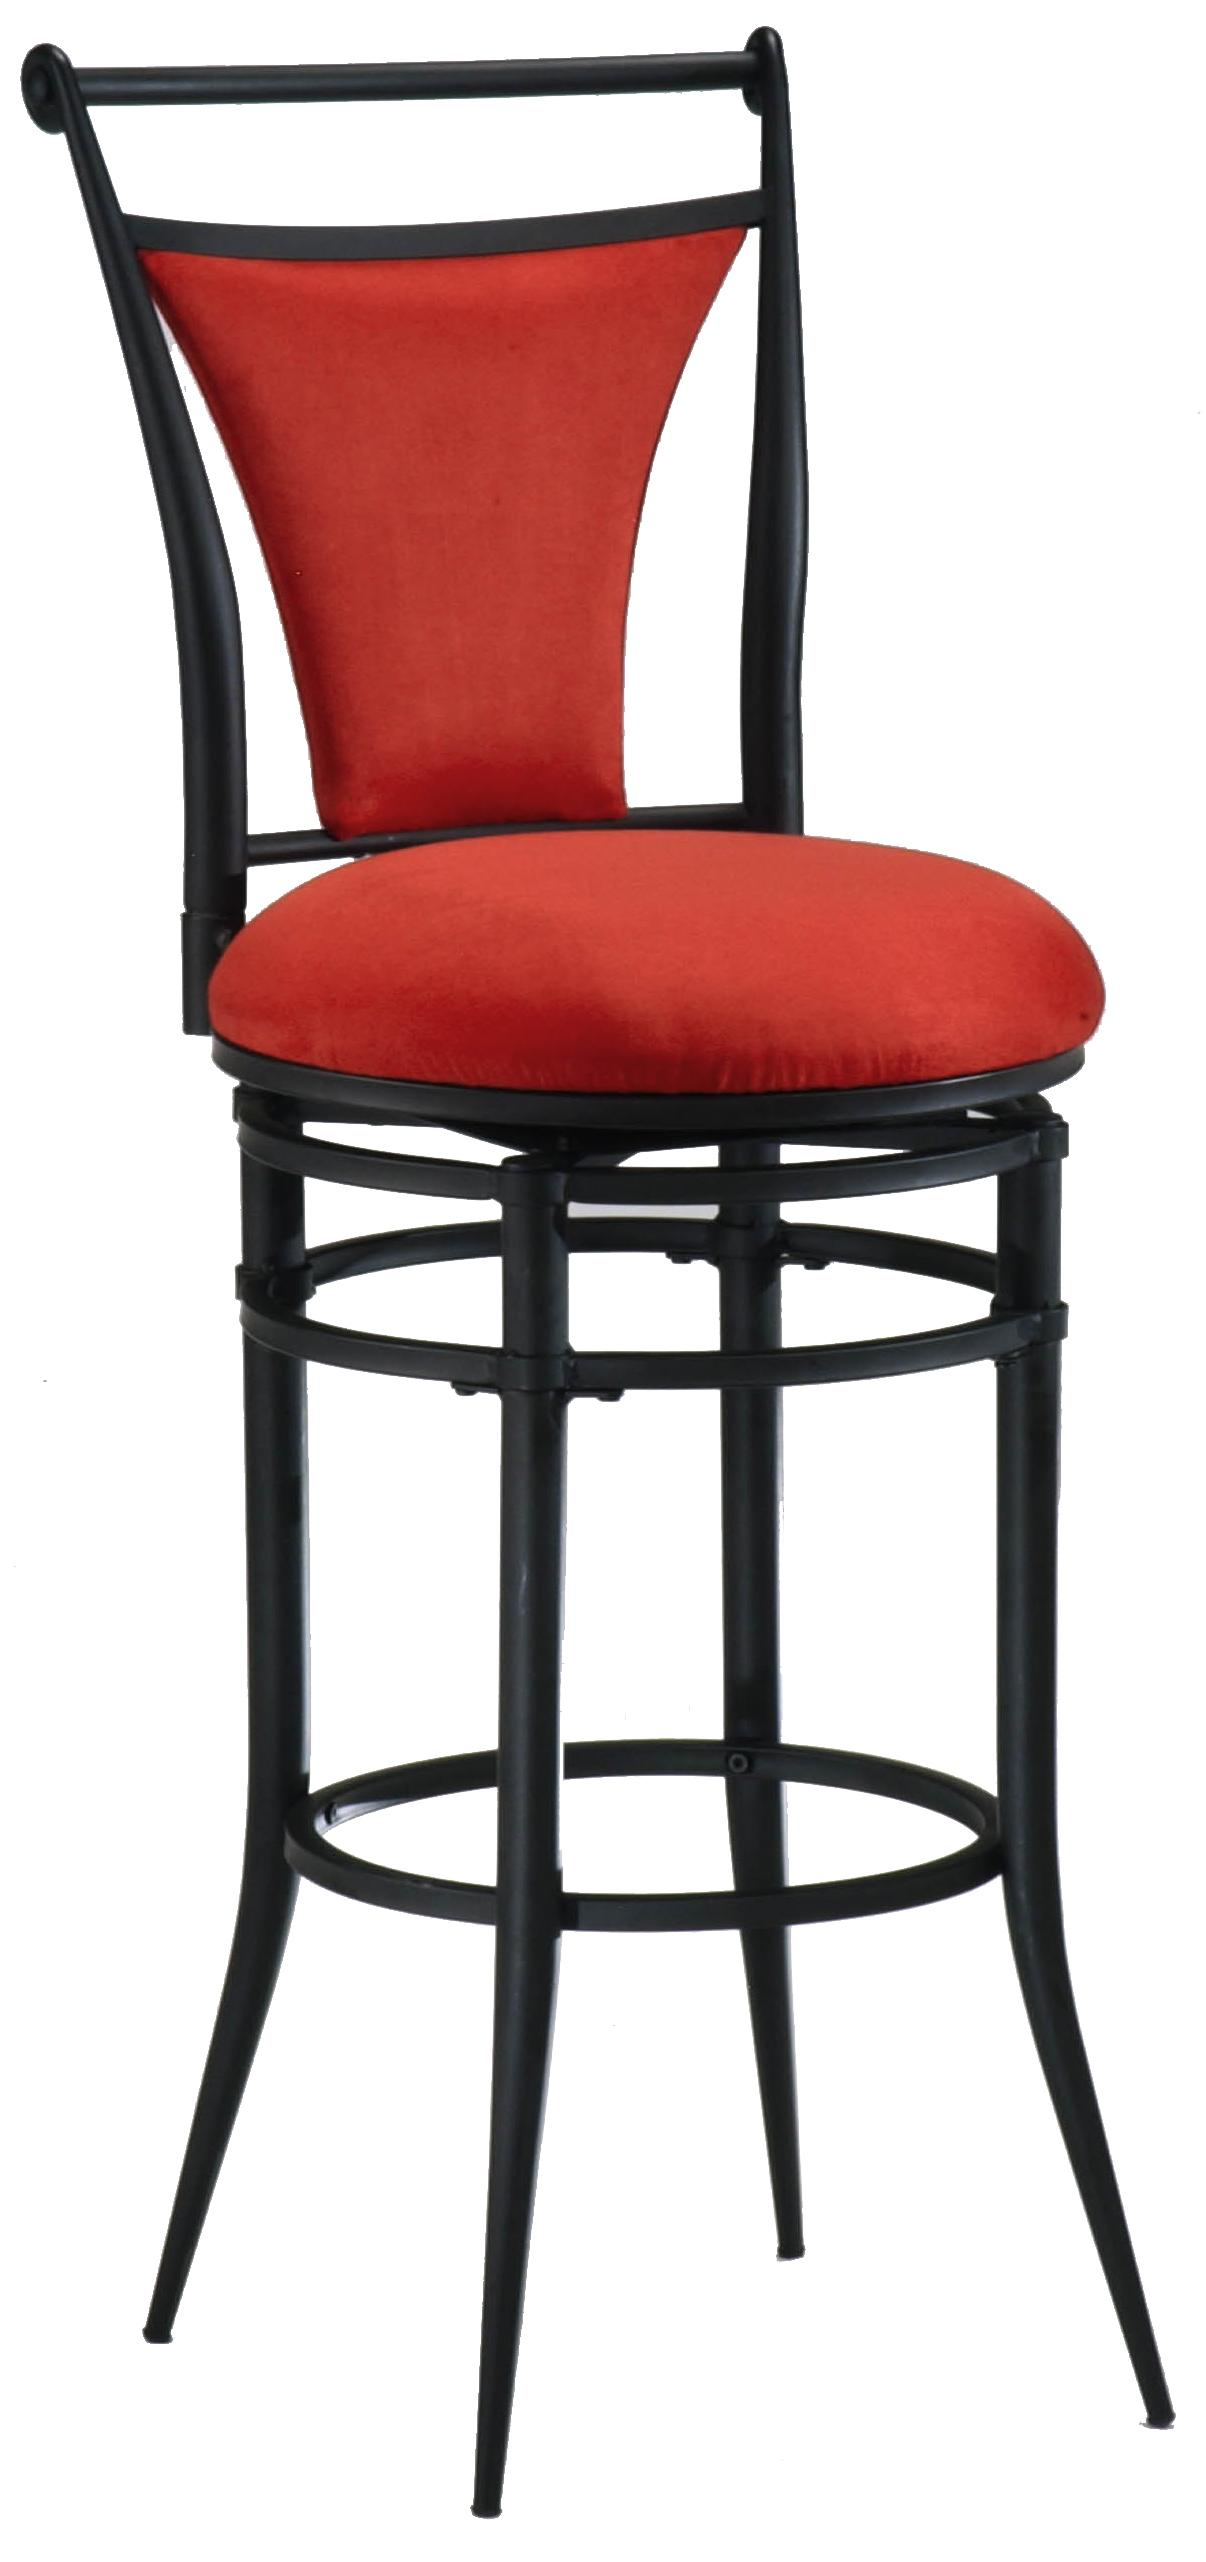 30 Bar Height Flame Cierra Stool By Hillsdale Wolf And Gardiner Wolf Furniture